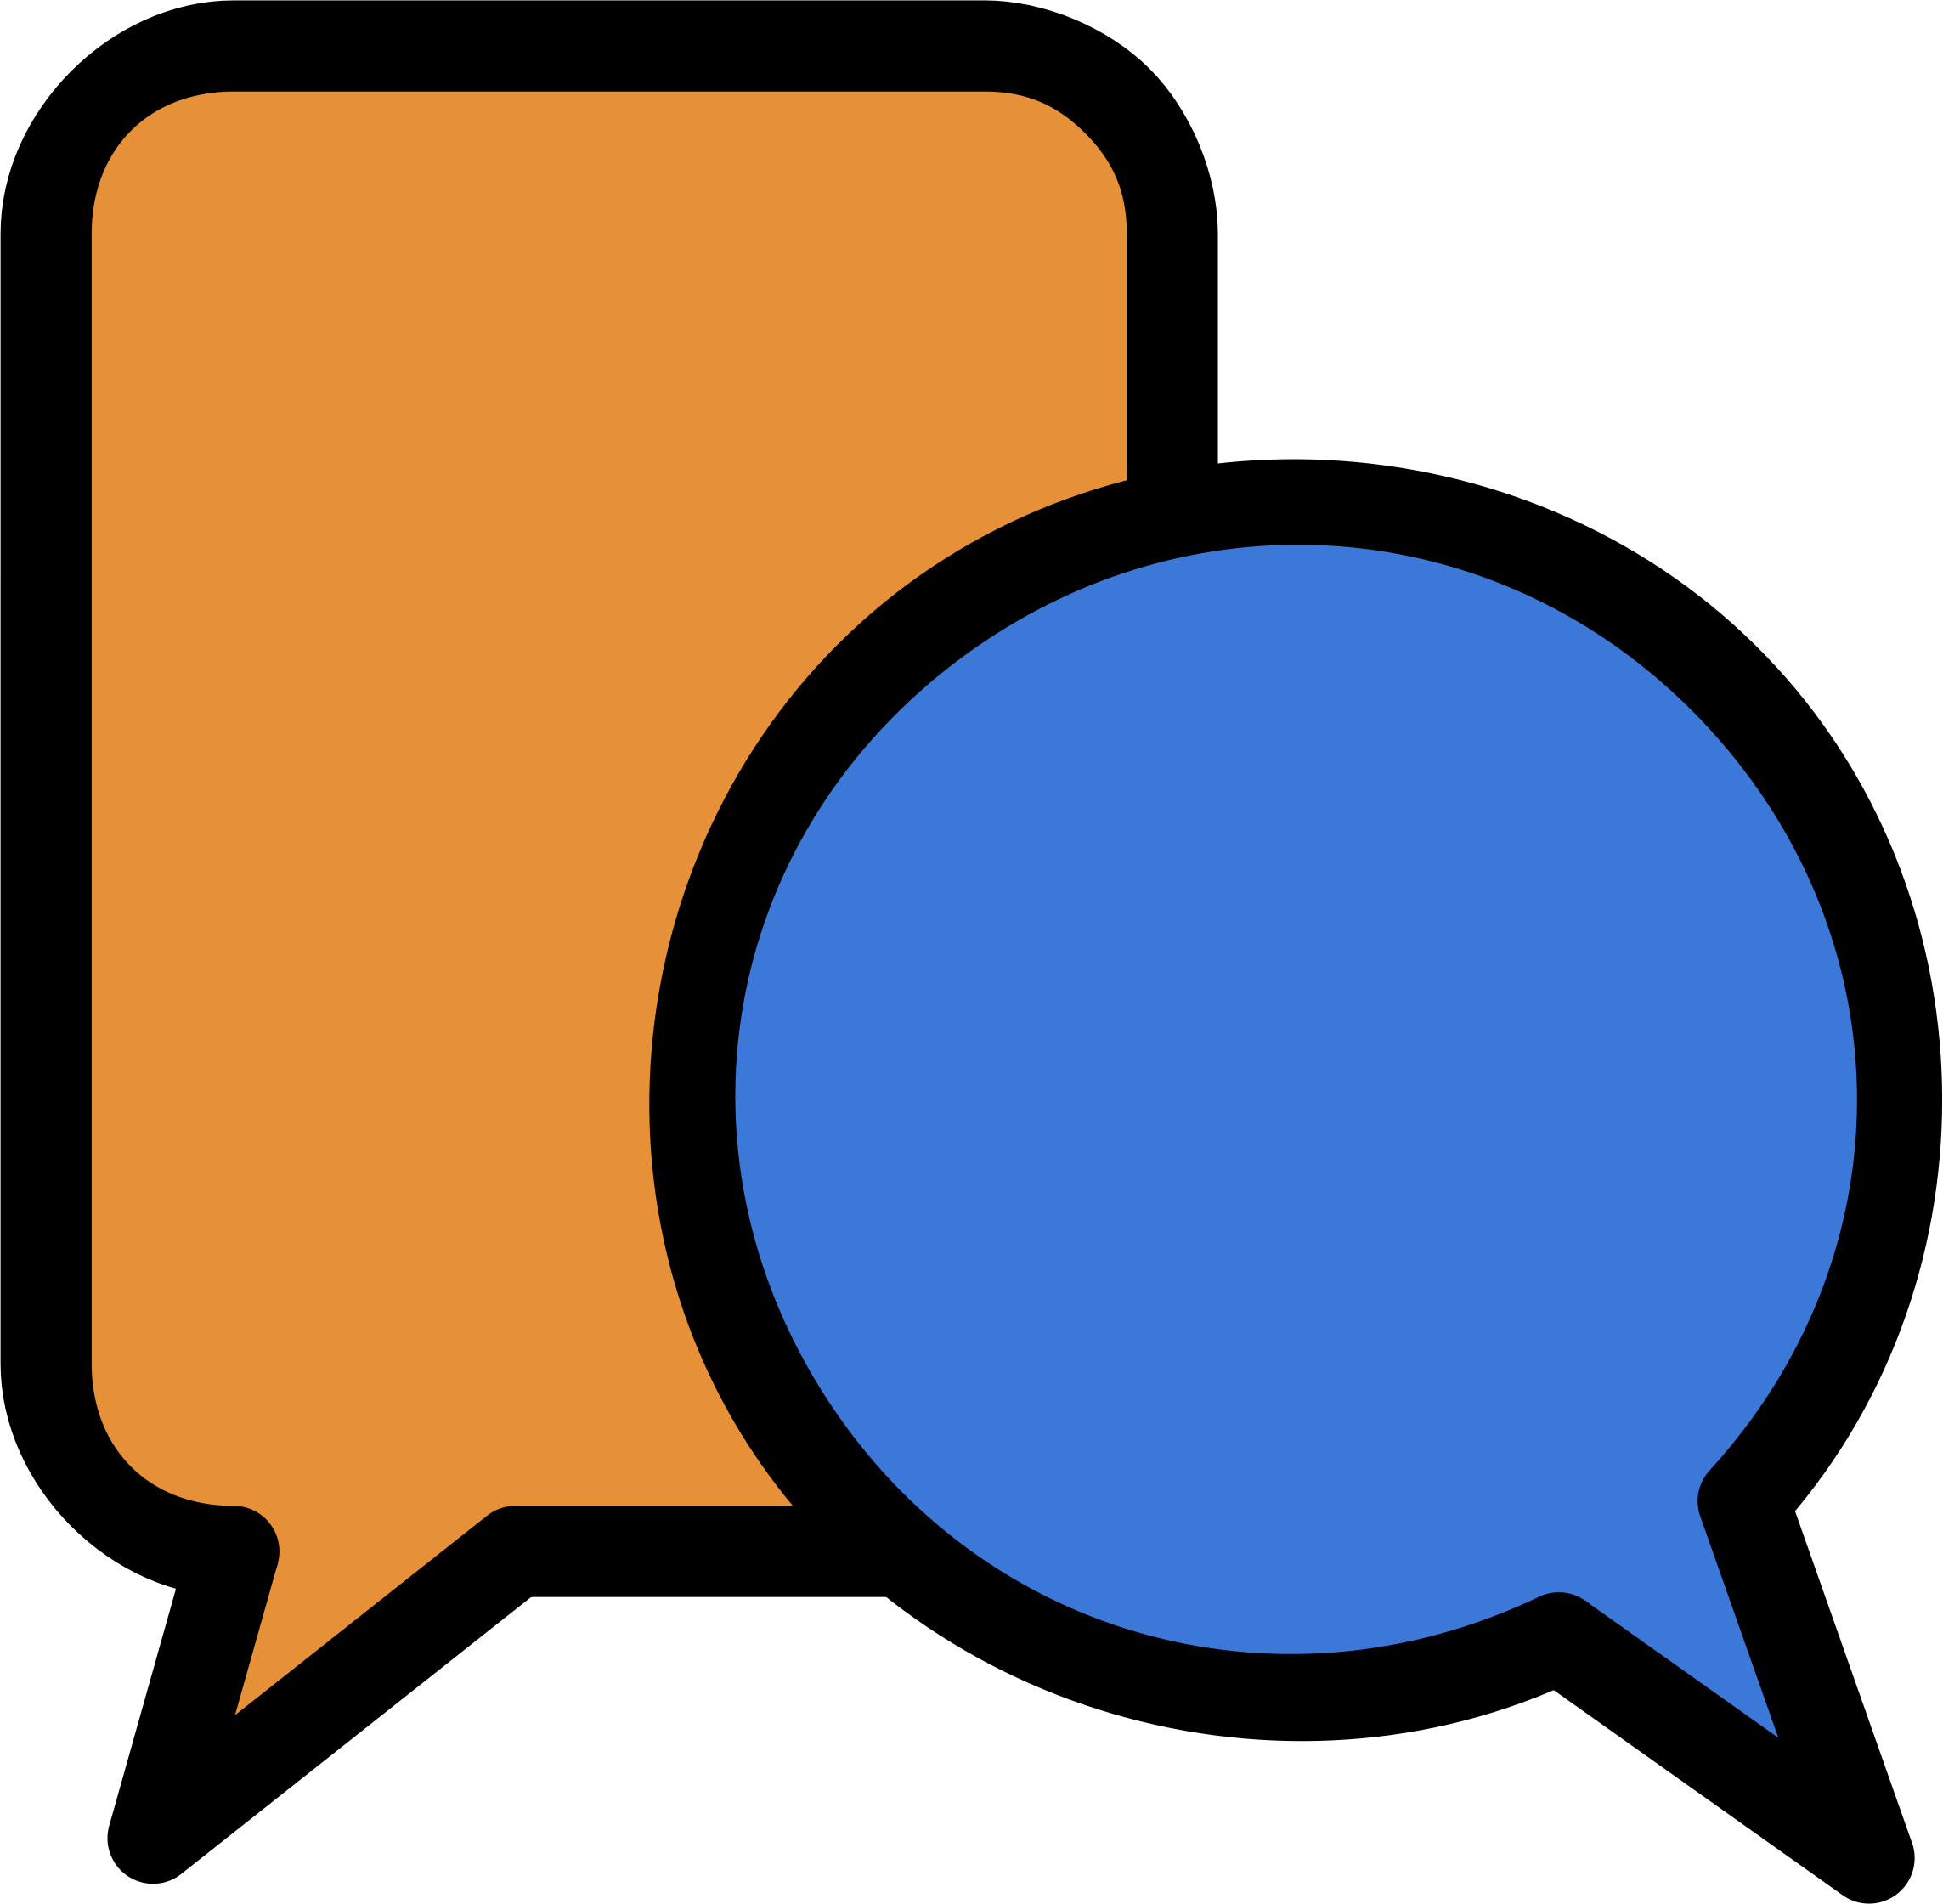 Moodle discussion icon by mitchhughes